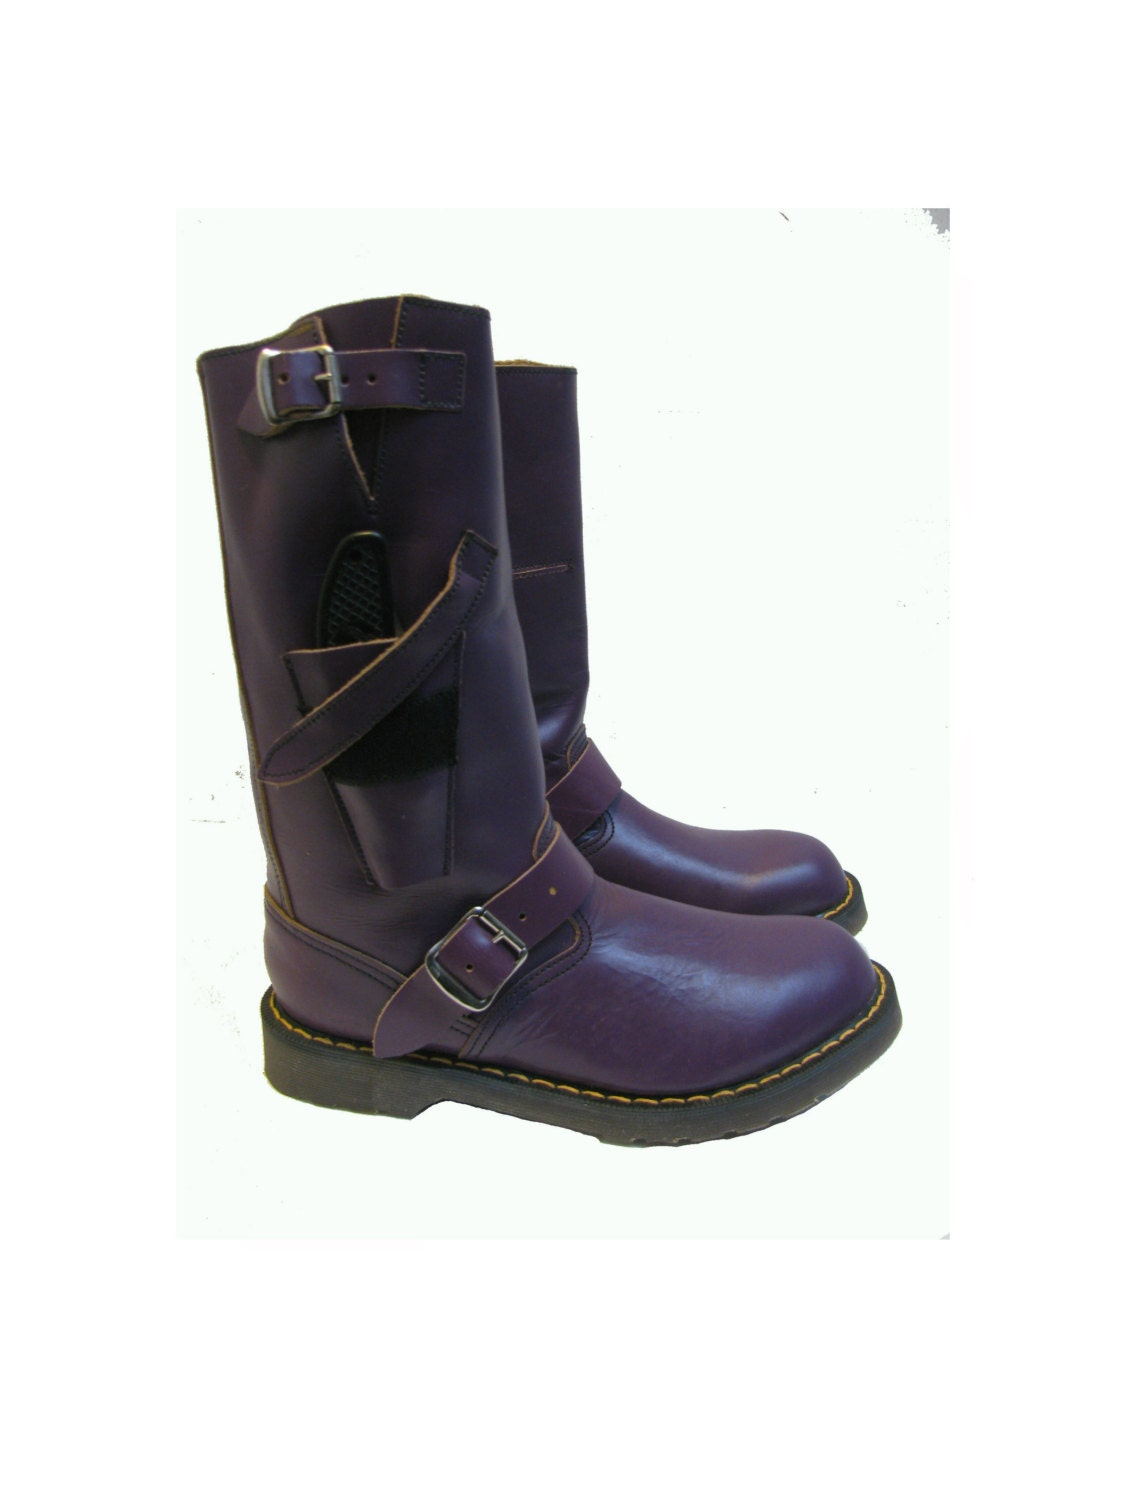 Dr martens motorcycle boot vintage mens purple by atomicfireball